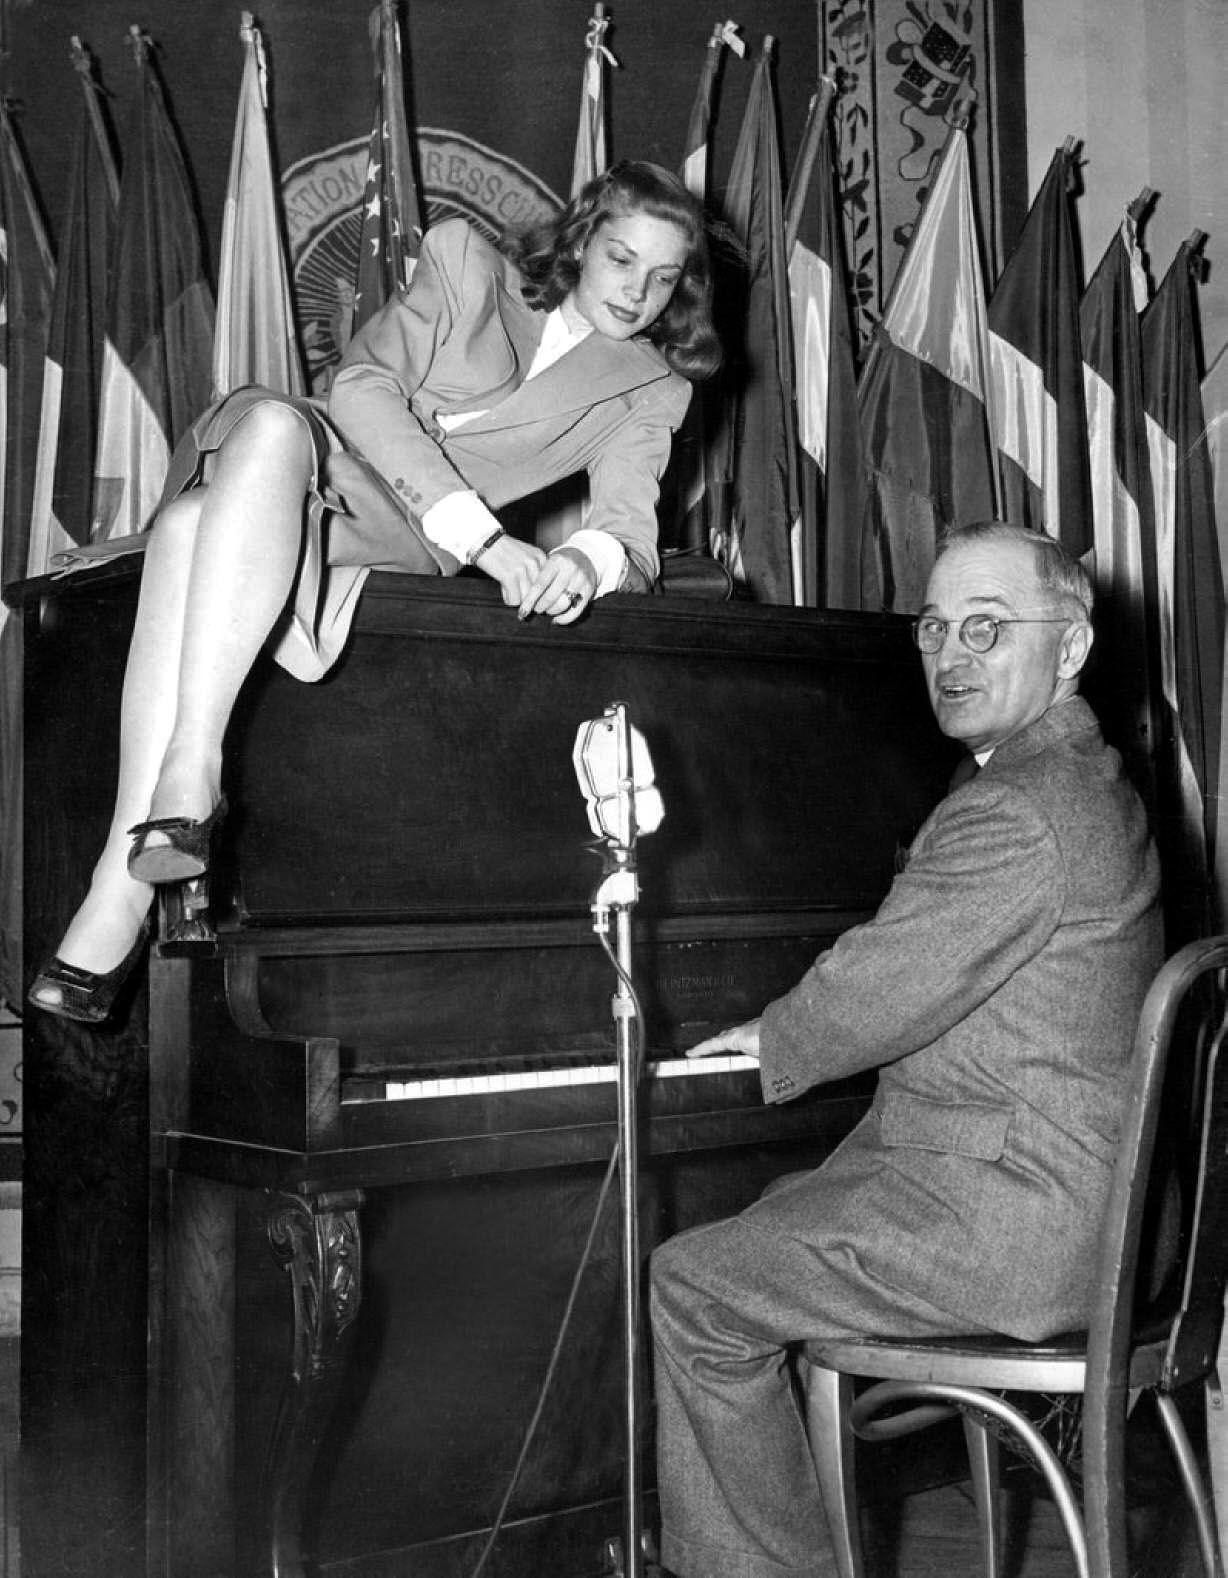 Actress Lauren Bacall lounges on top of the piano while Vice President Truman plays an old-fashioned waltz for servicemen at the National Press Club Canteen in Washington, D.C. on February 10, 1945. The photograph was published in the February 26, 1945, issue of LIFE magazine where the text reads: